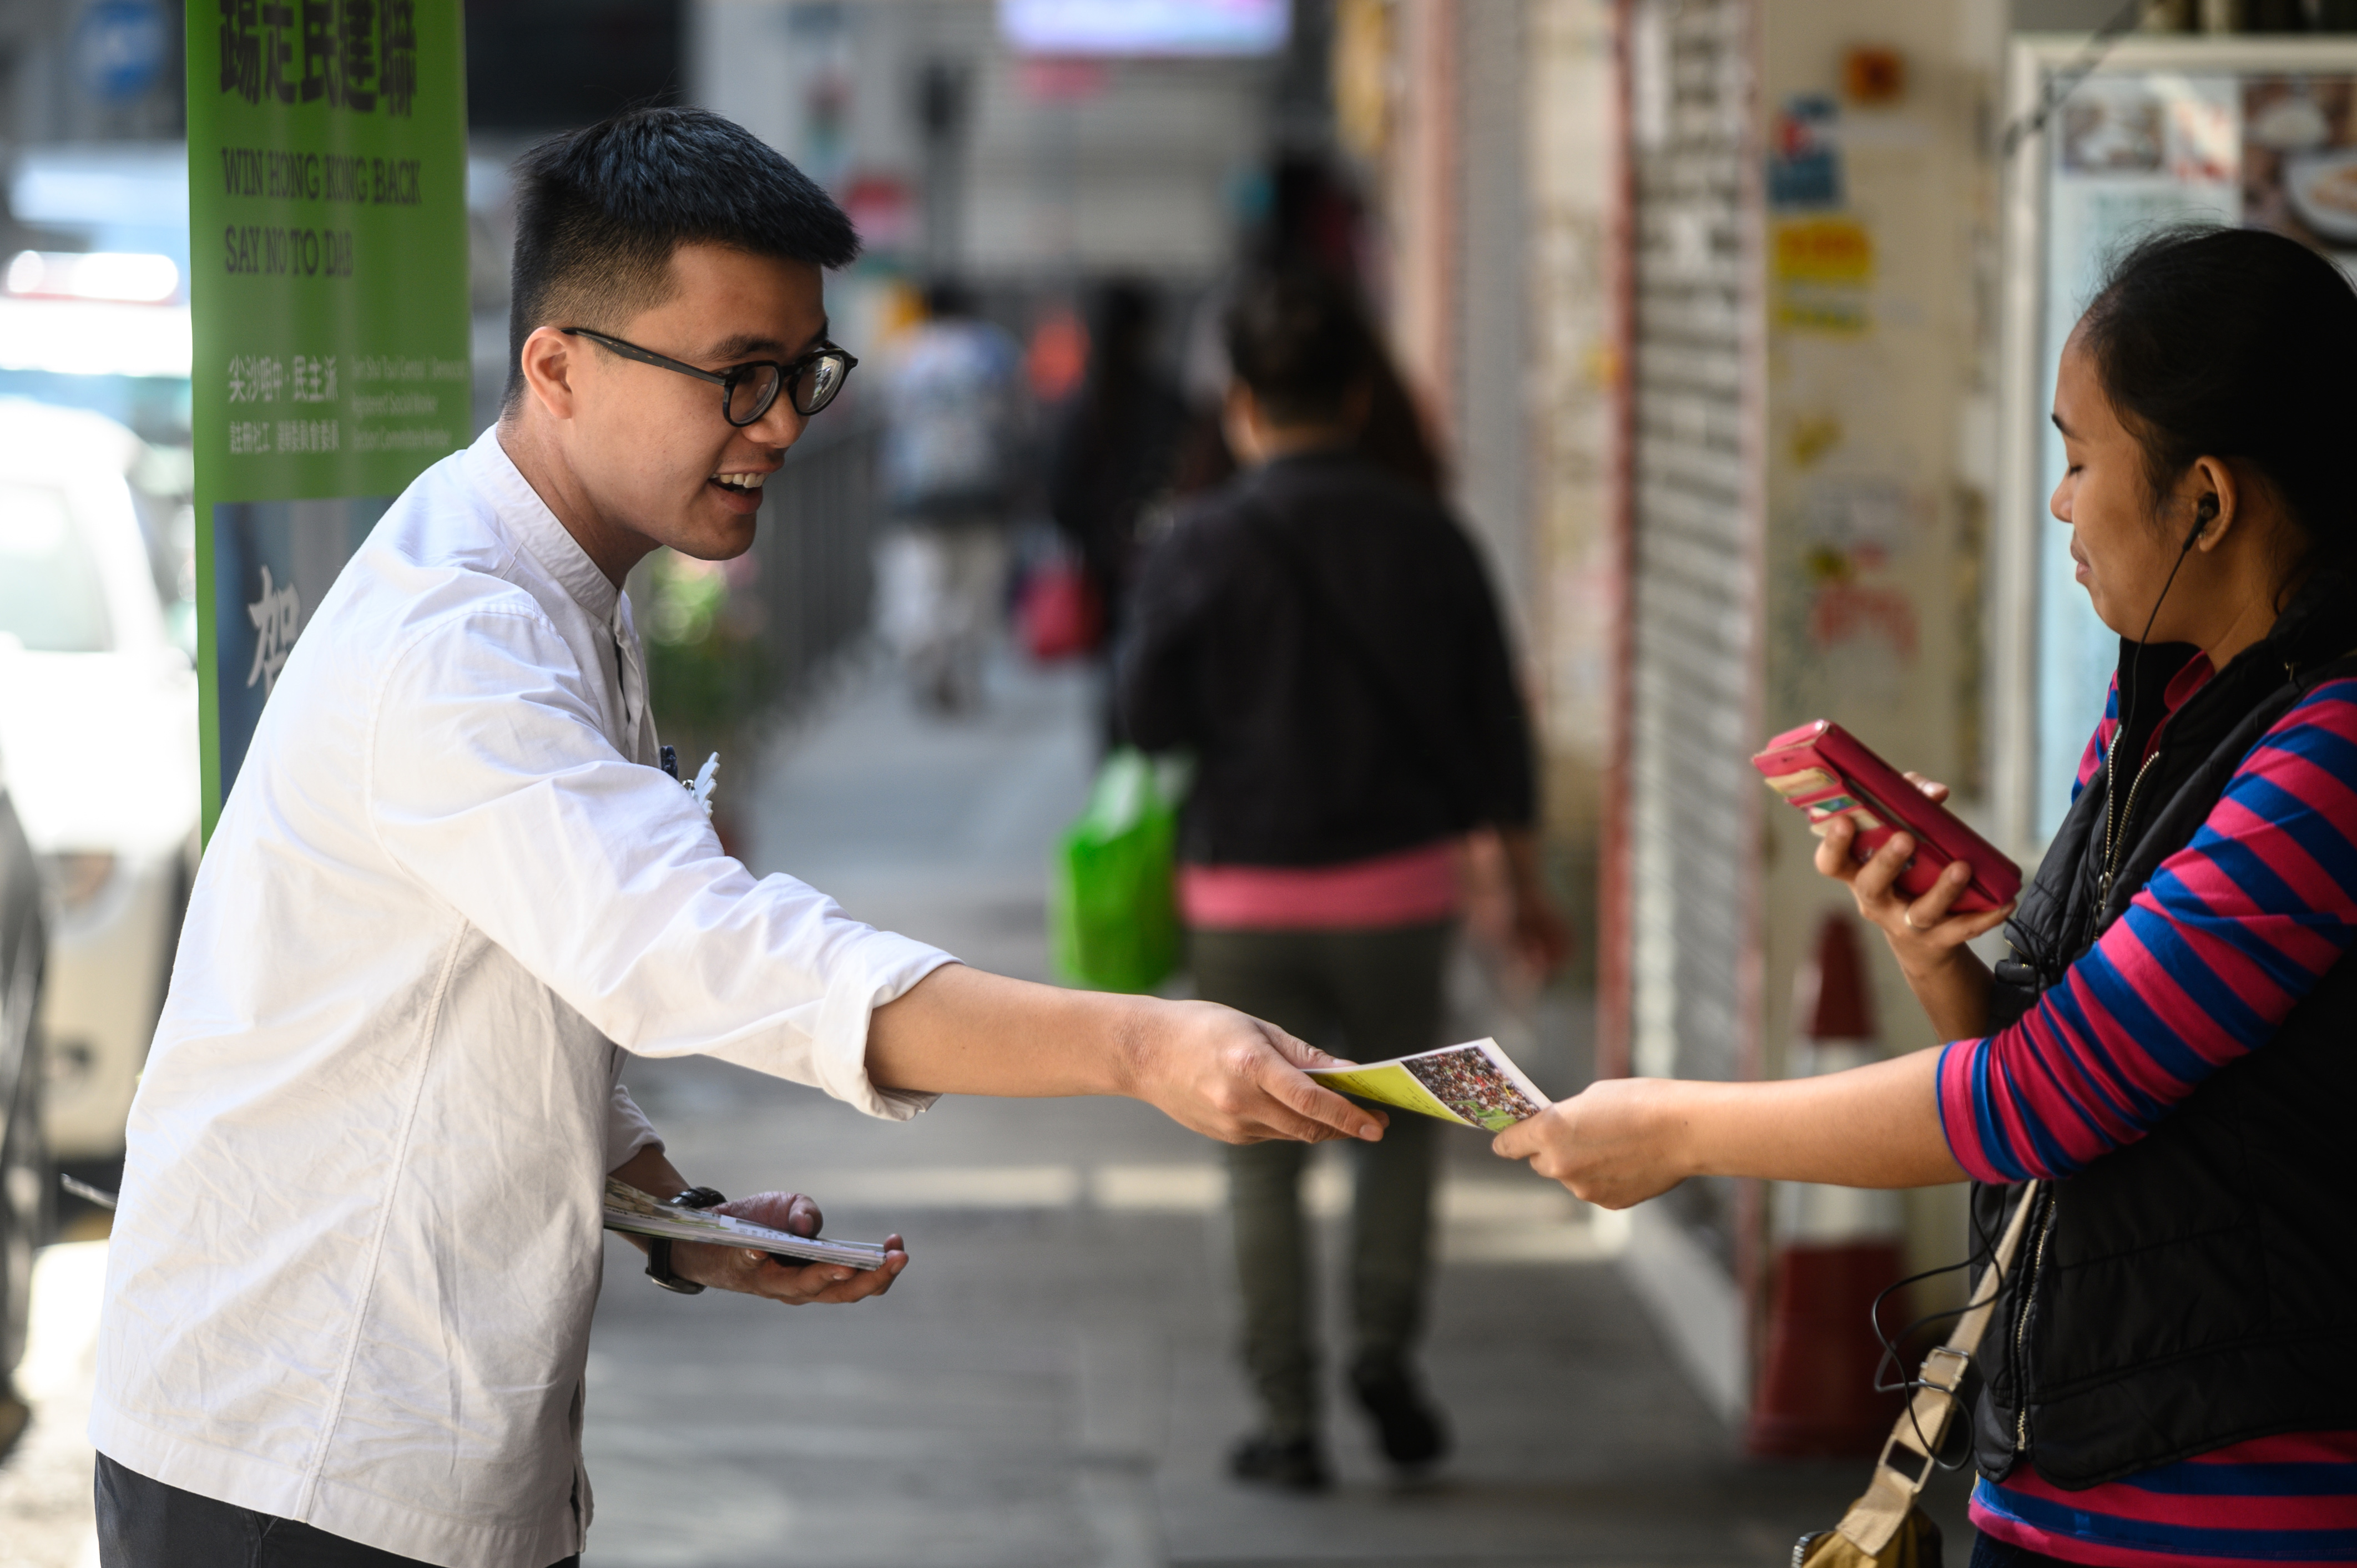 In this picture taken on Nov. 21, 2019, district council election candidate Isaac Ho hands out leaflets to people in Tsim Sha Tsui in Hong Kong.